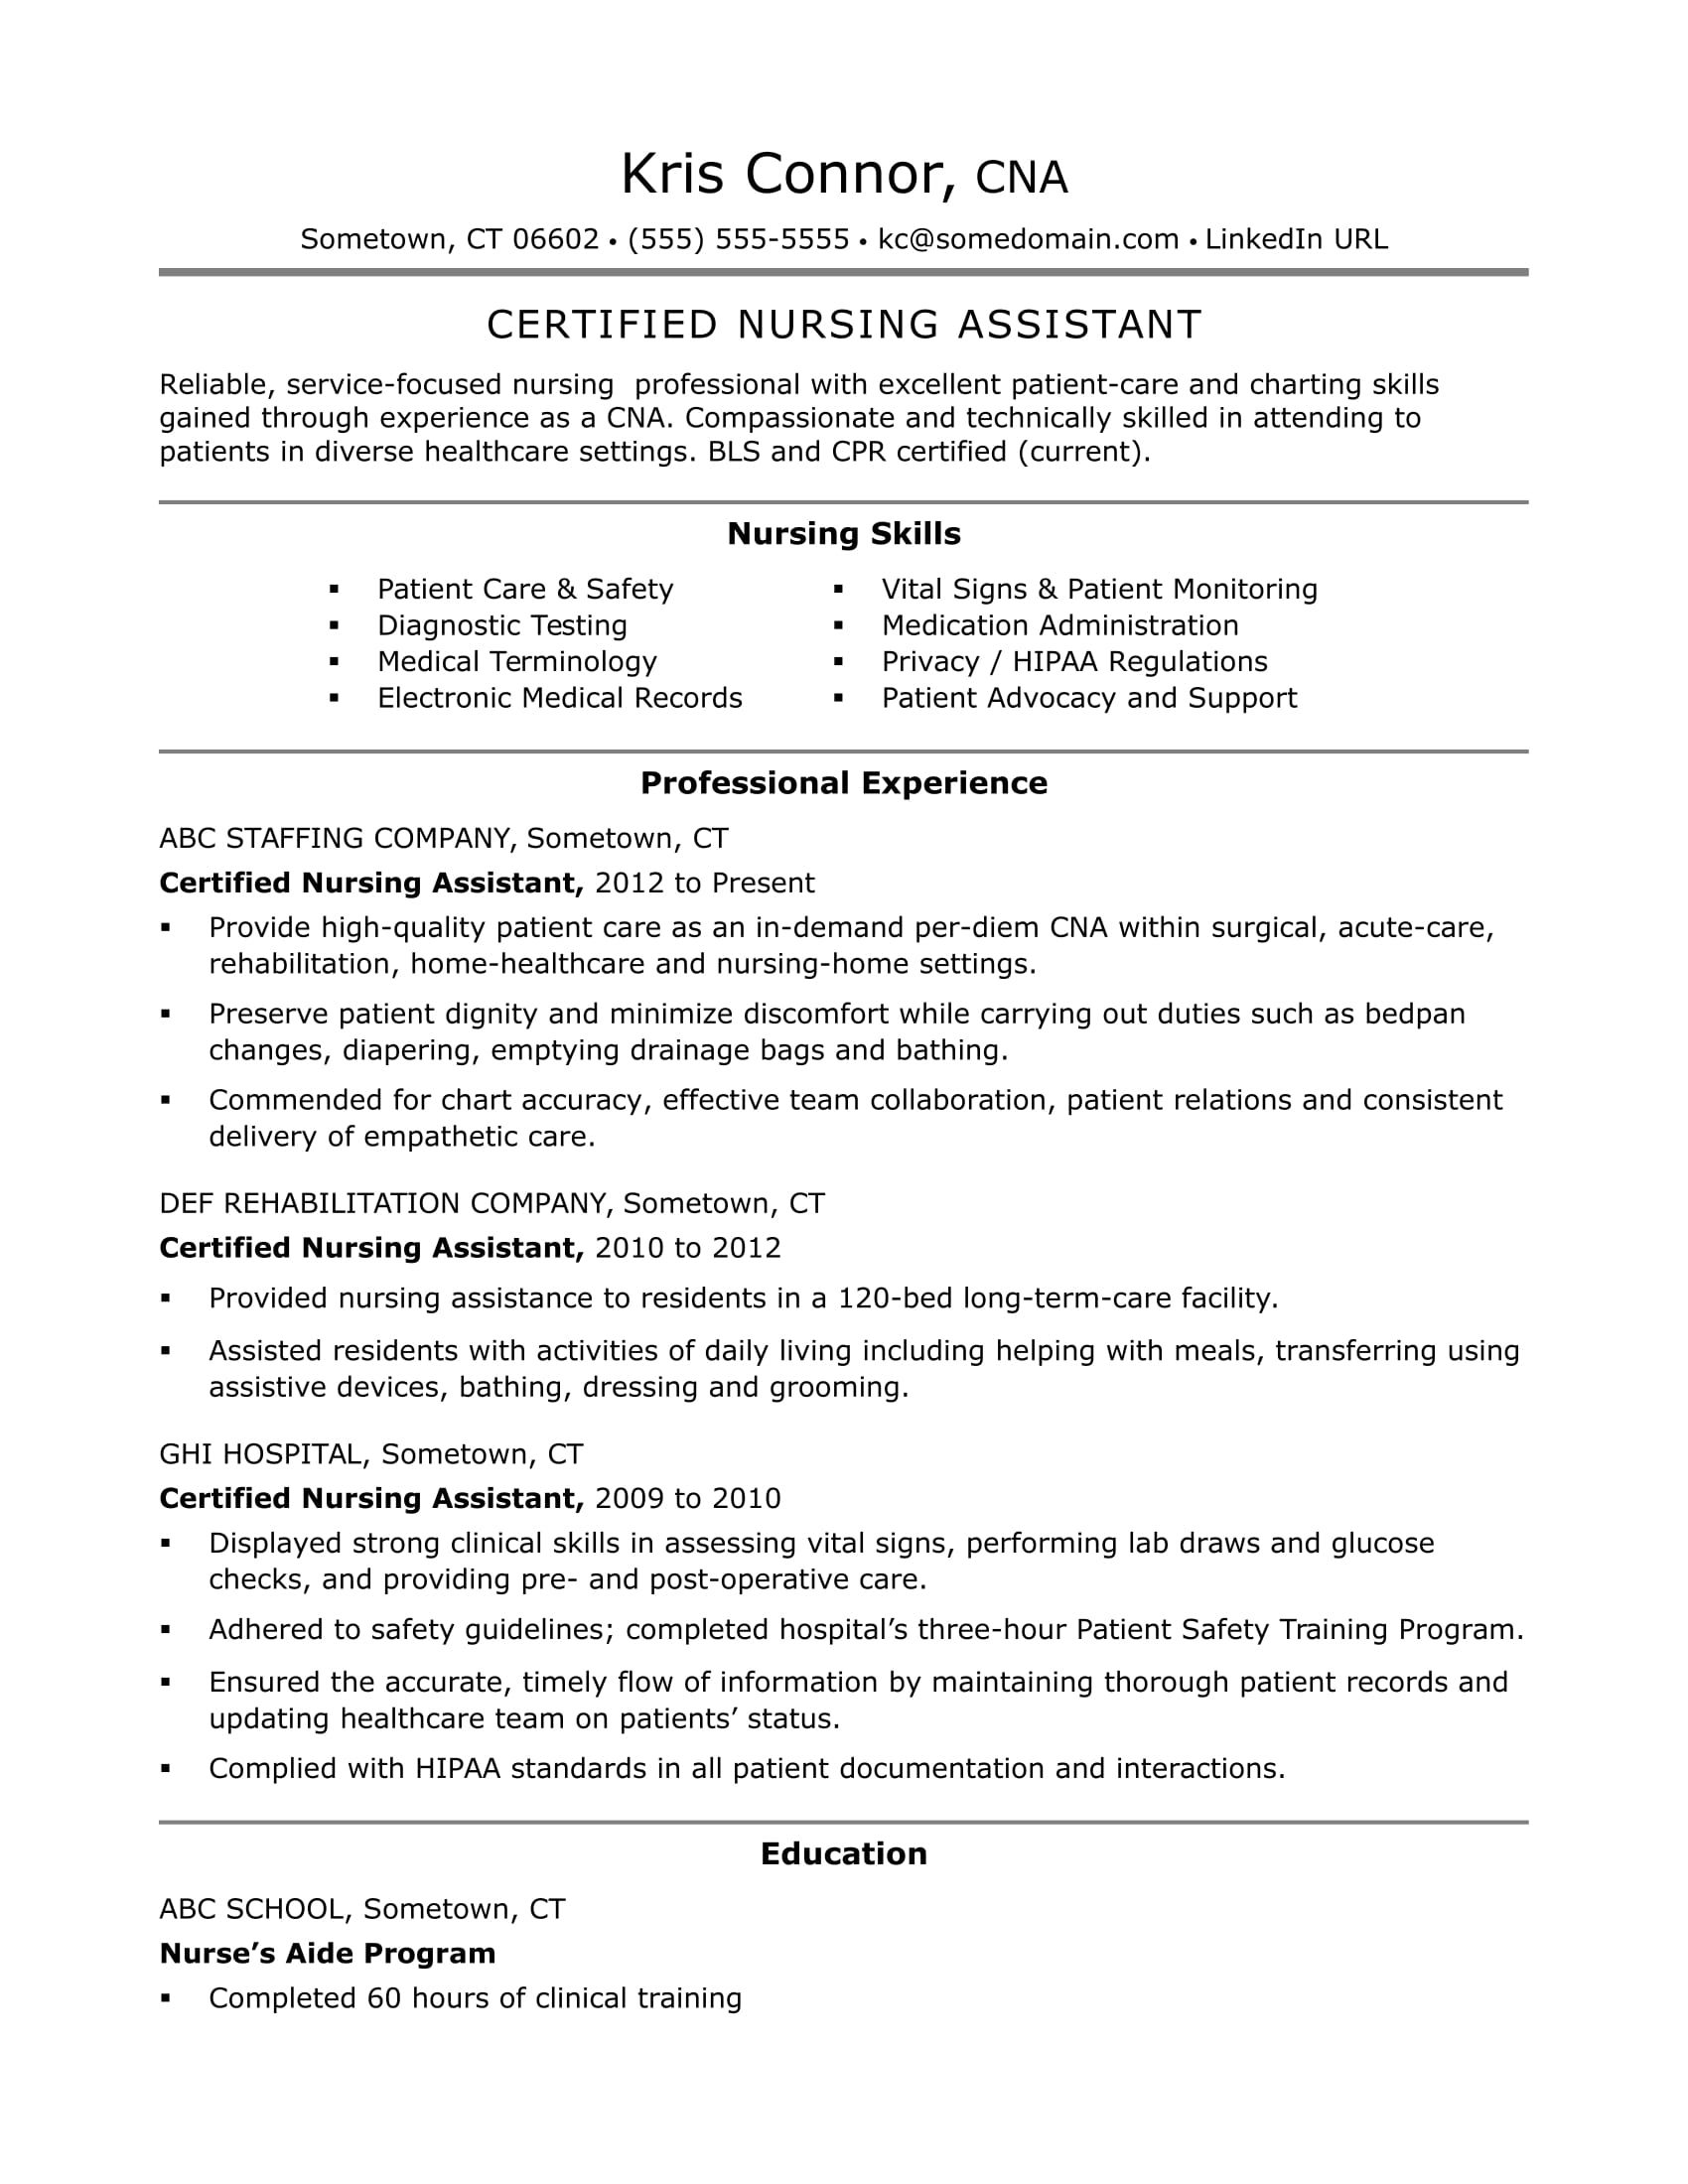 cna resume example - Skill Resume Samples